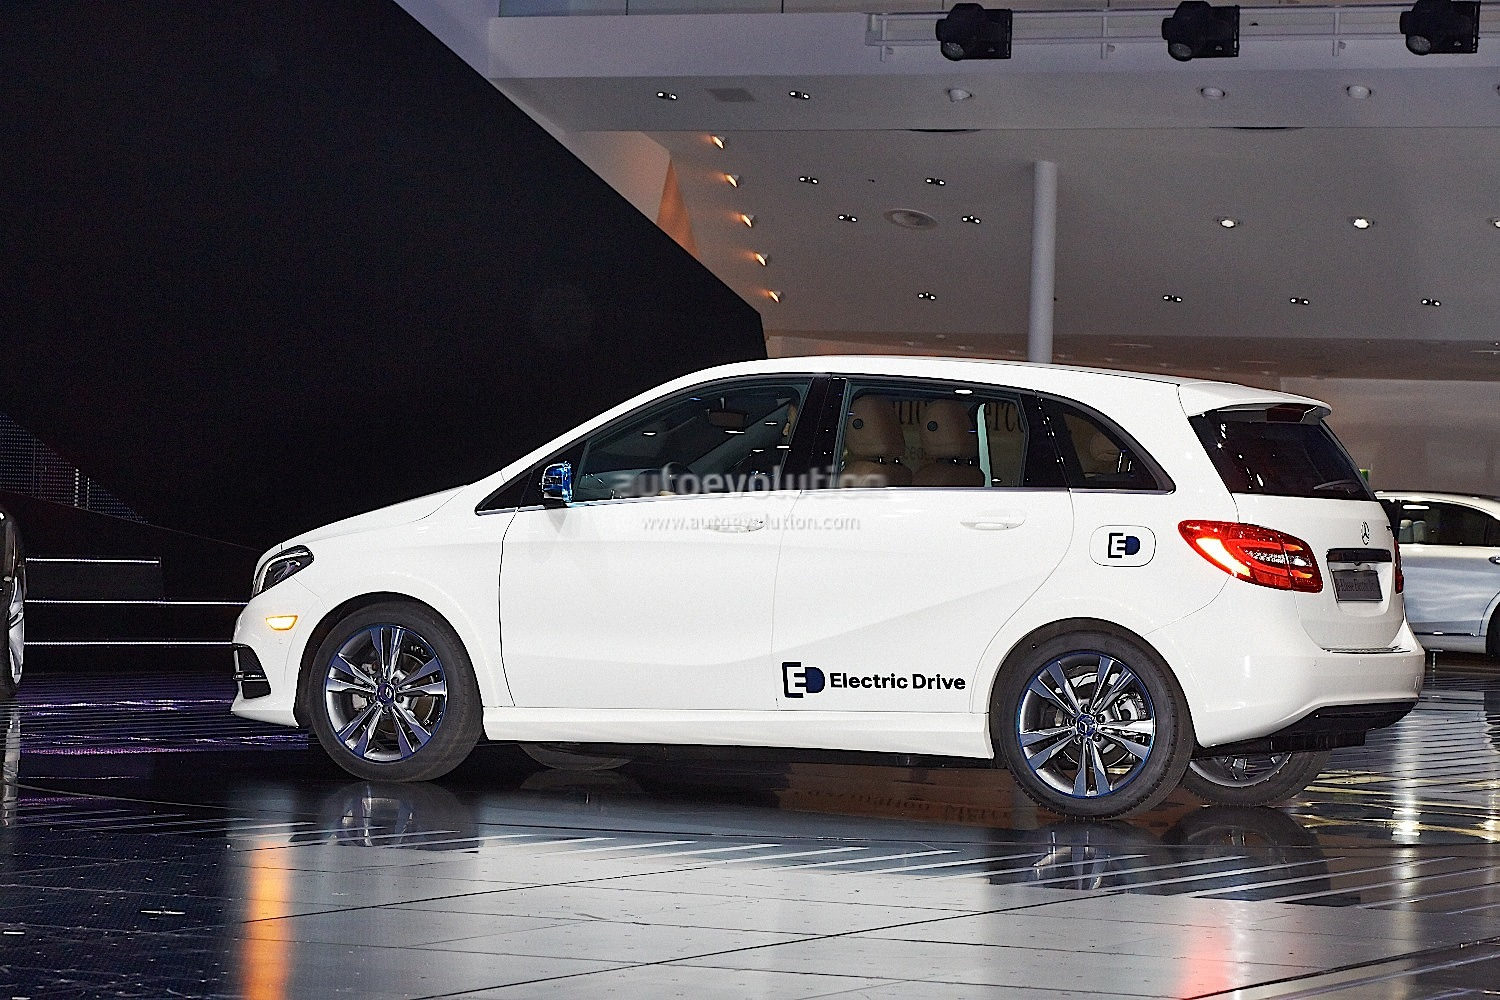 Mercedes benz b class electric drive reviewed by cnet for Mercedes benz b class electric drive